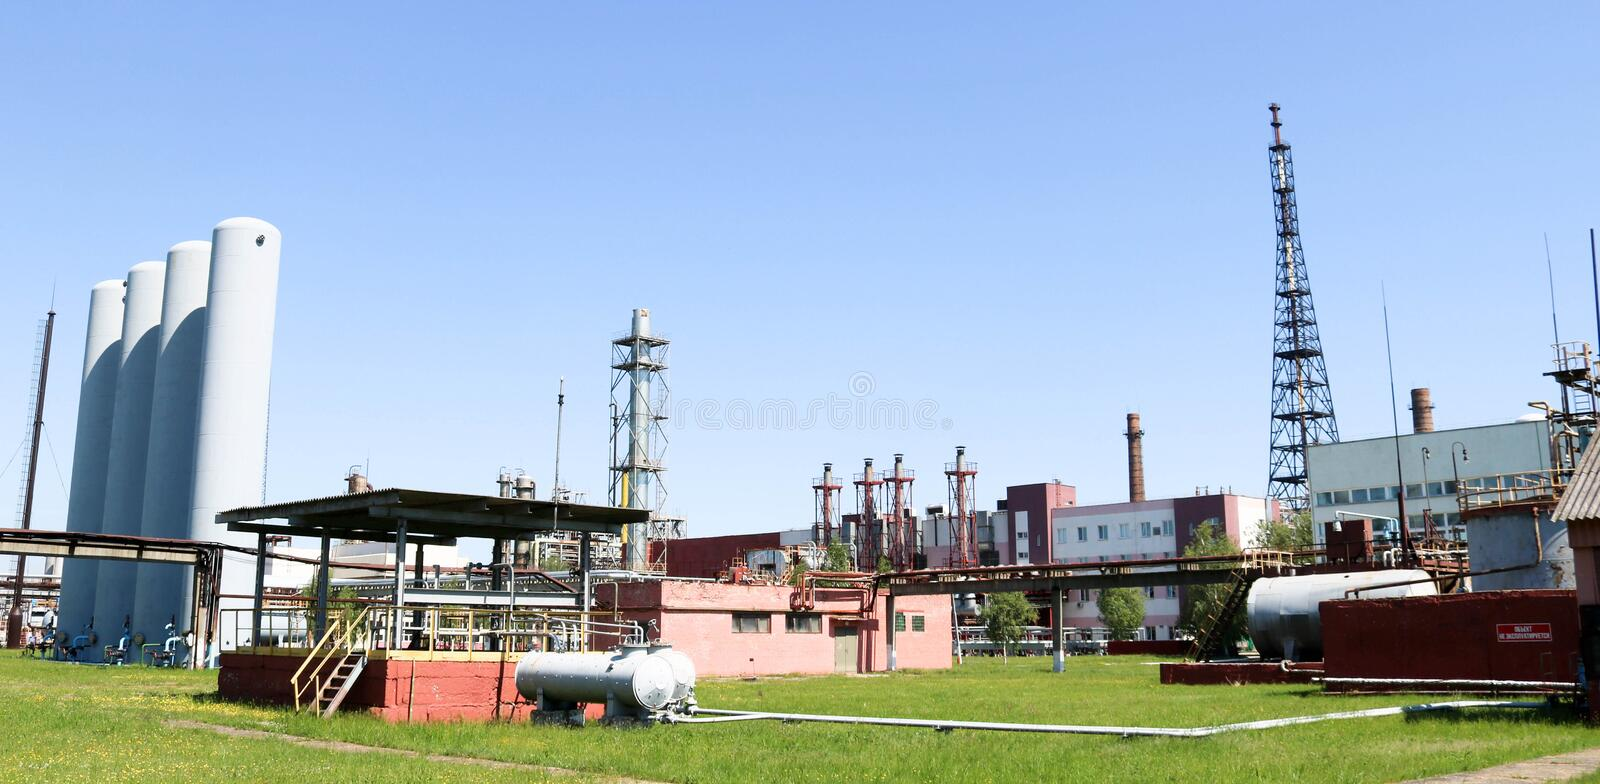 A large concrete technological industrial installation at a chemical petrochemical refinery with capacitive pipes by pumps. Compressors heat exchangers by royalty free stock photography